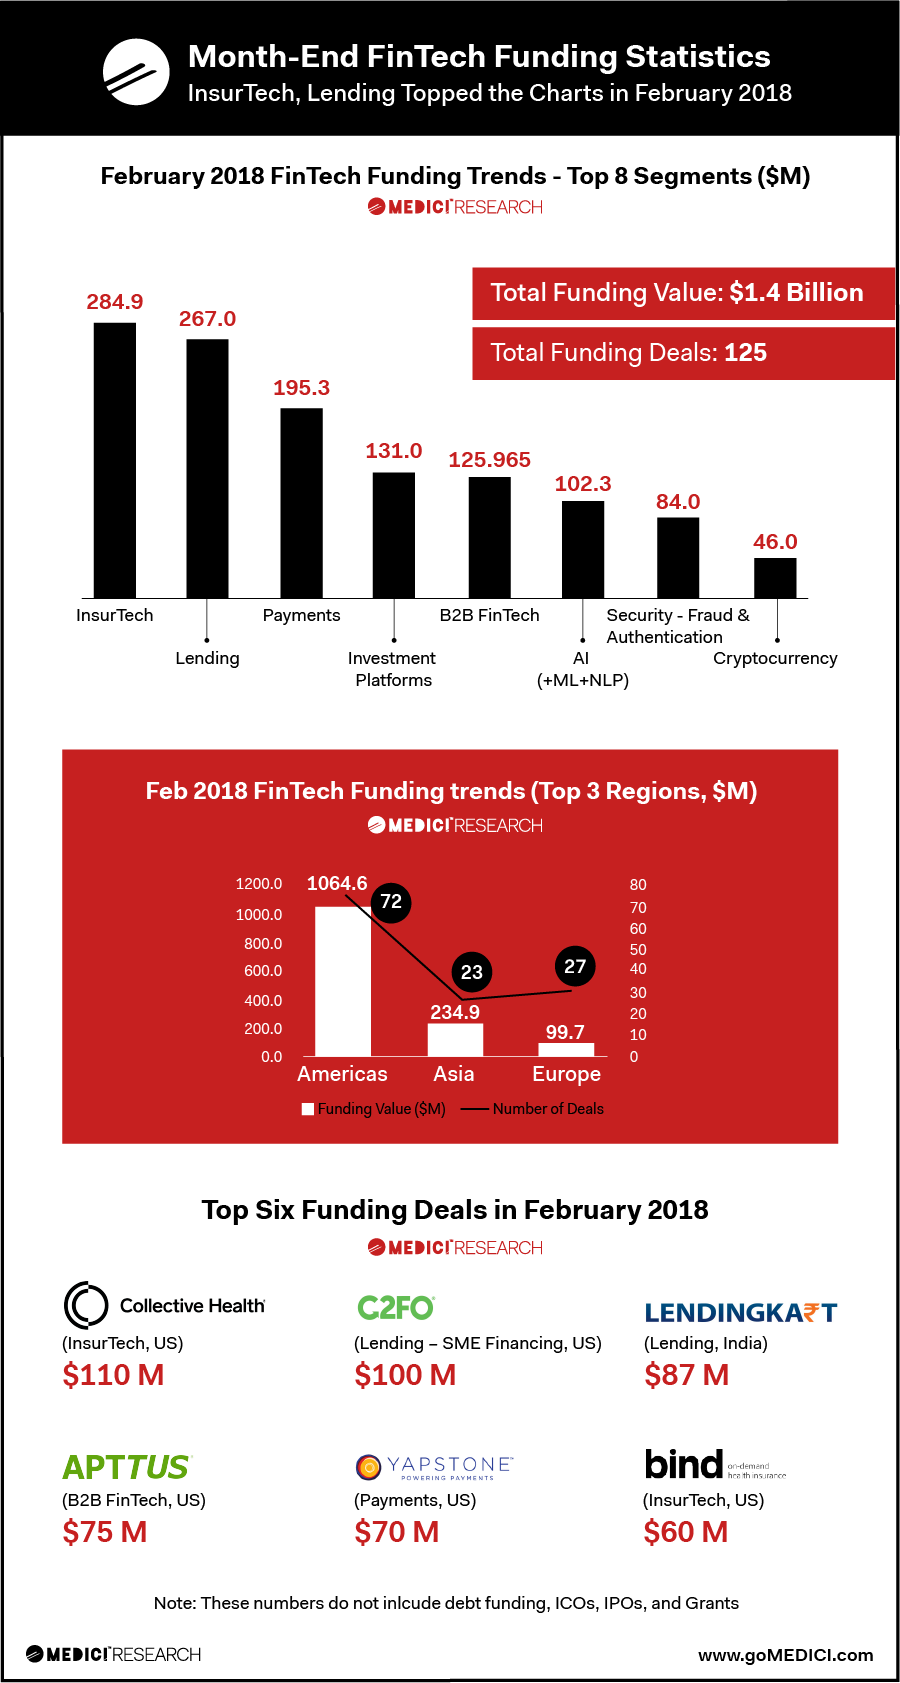 Significant growth in funding for FinTech startups in February 2018